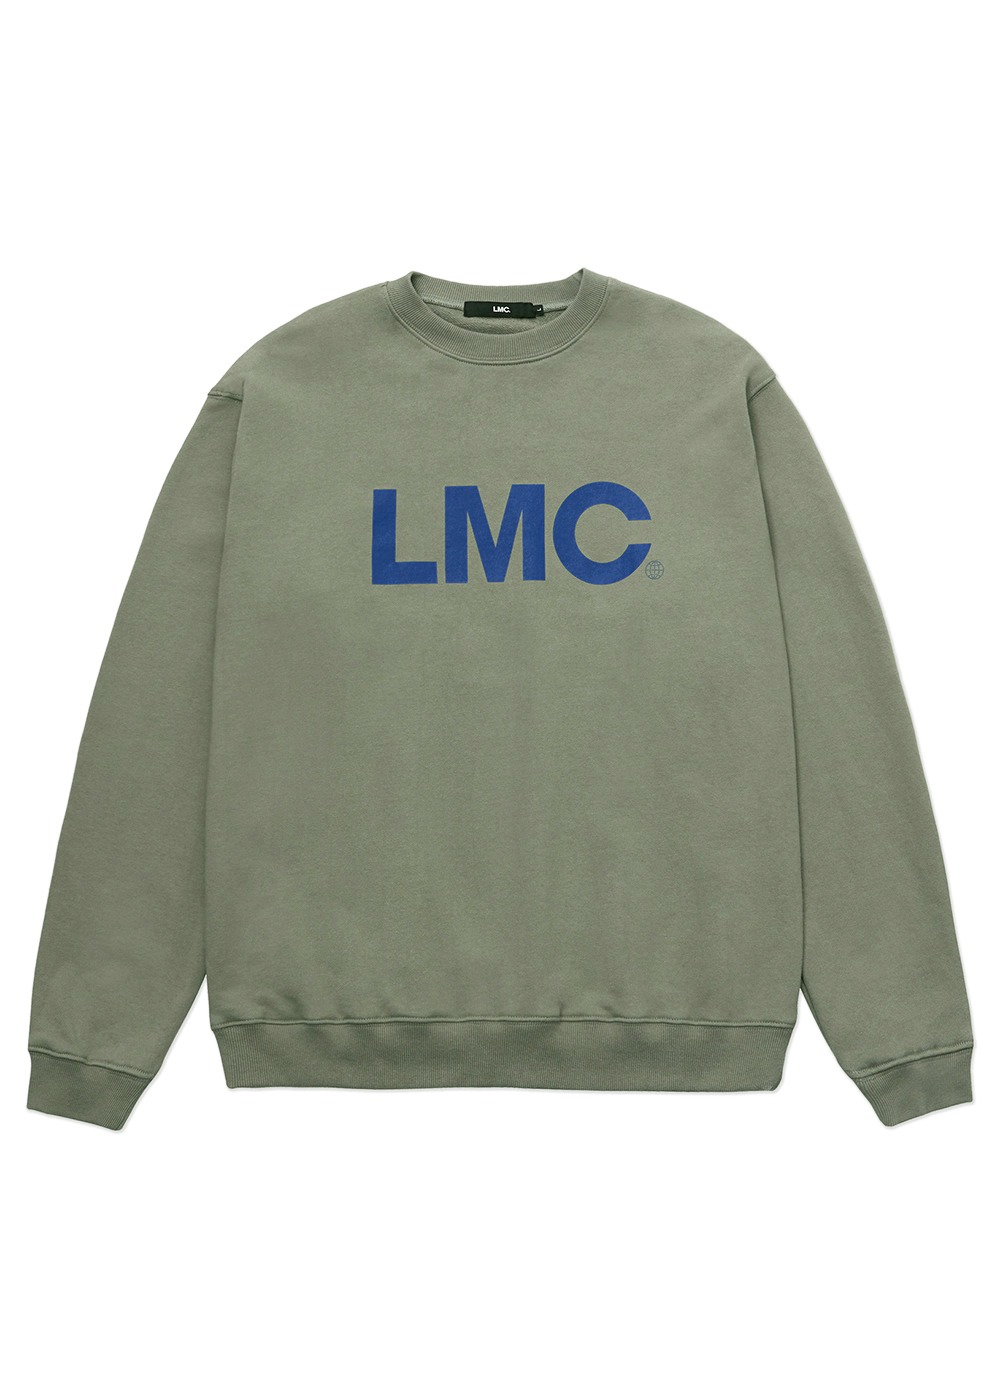 LMC OG WHEEL SWEATSHIRT olive